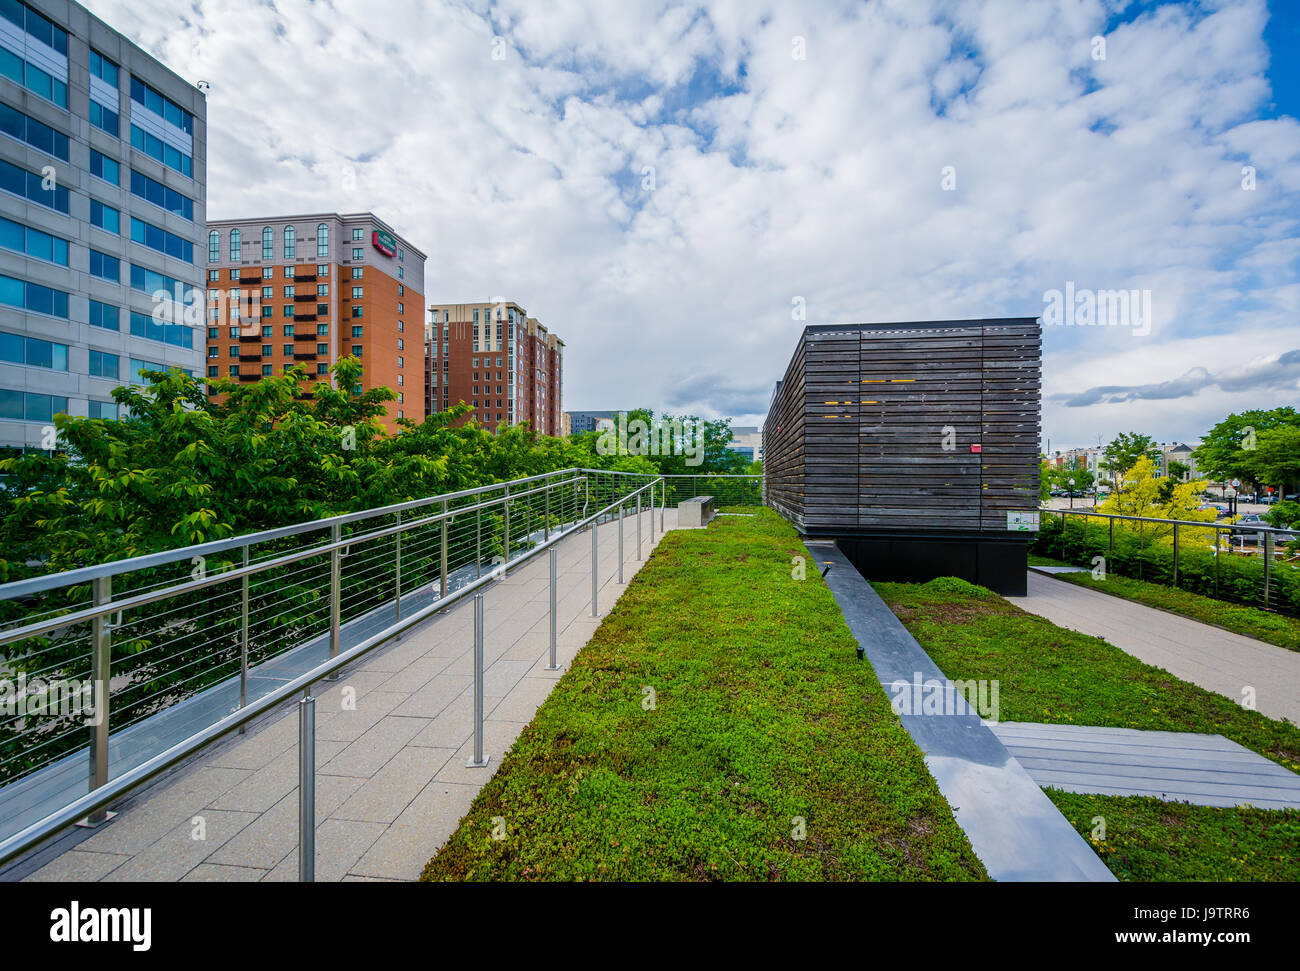 Elevated platform at Canal Park in the Navy Yard neighborhood of Washington, DC. Stock Photo